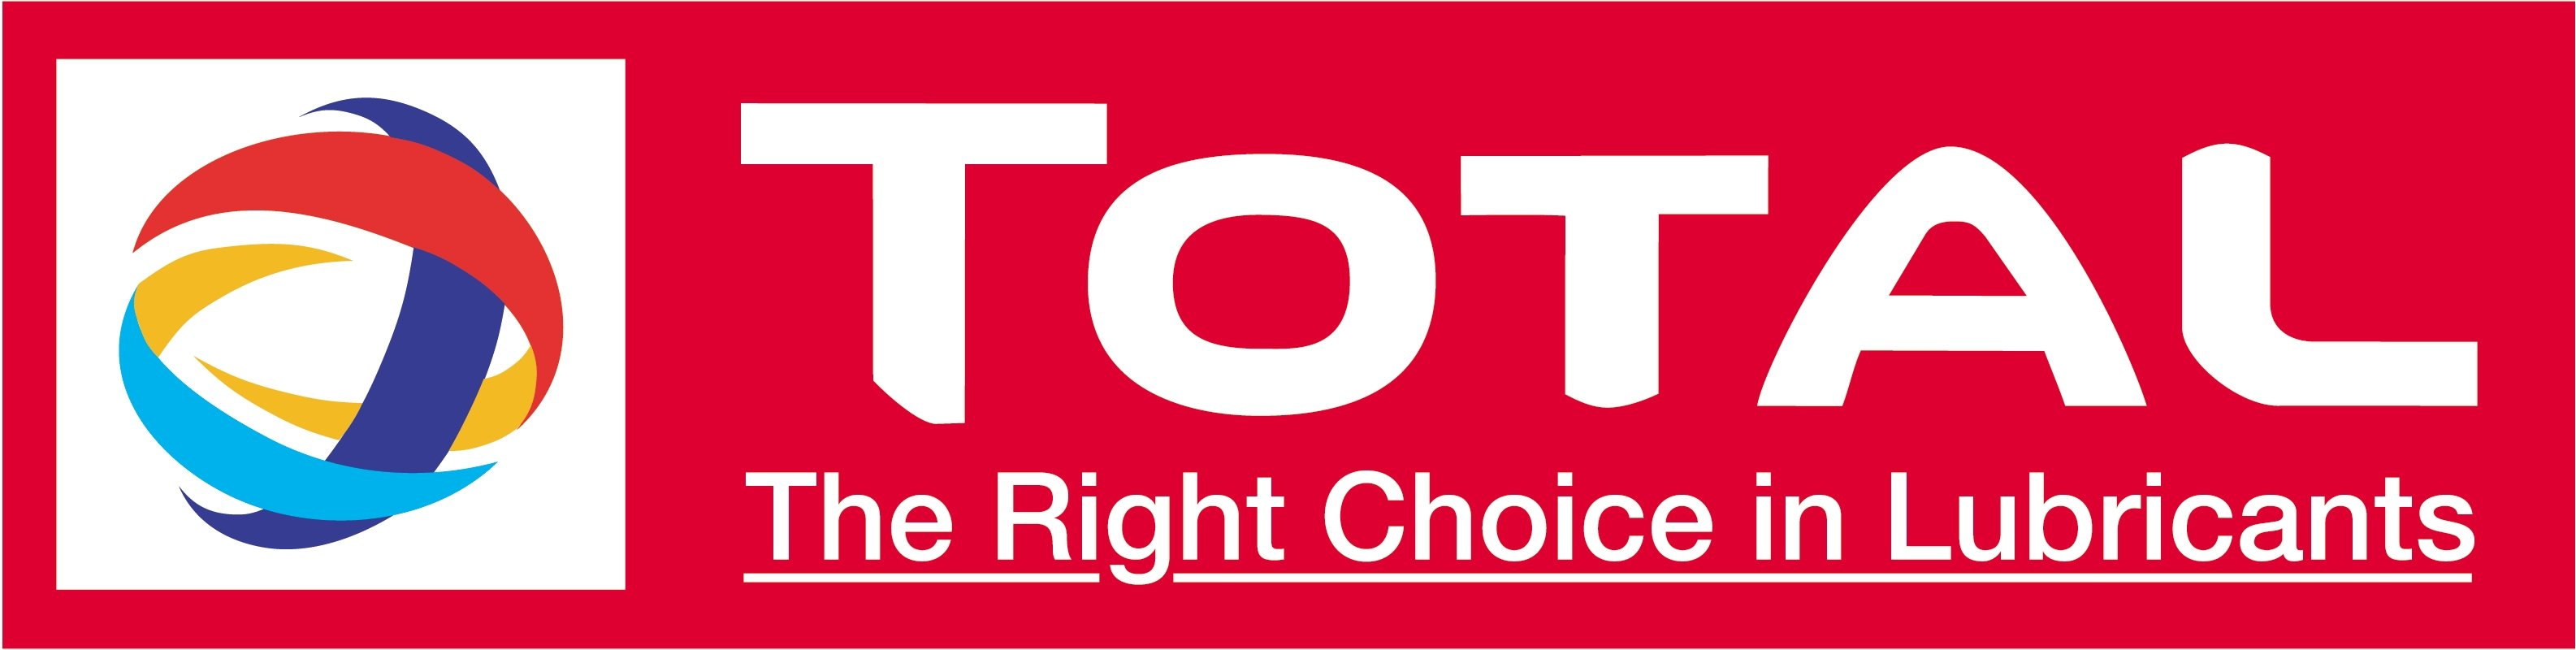 Total logo red background jpg